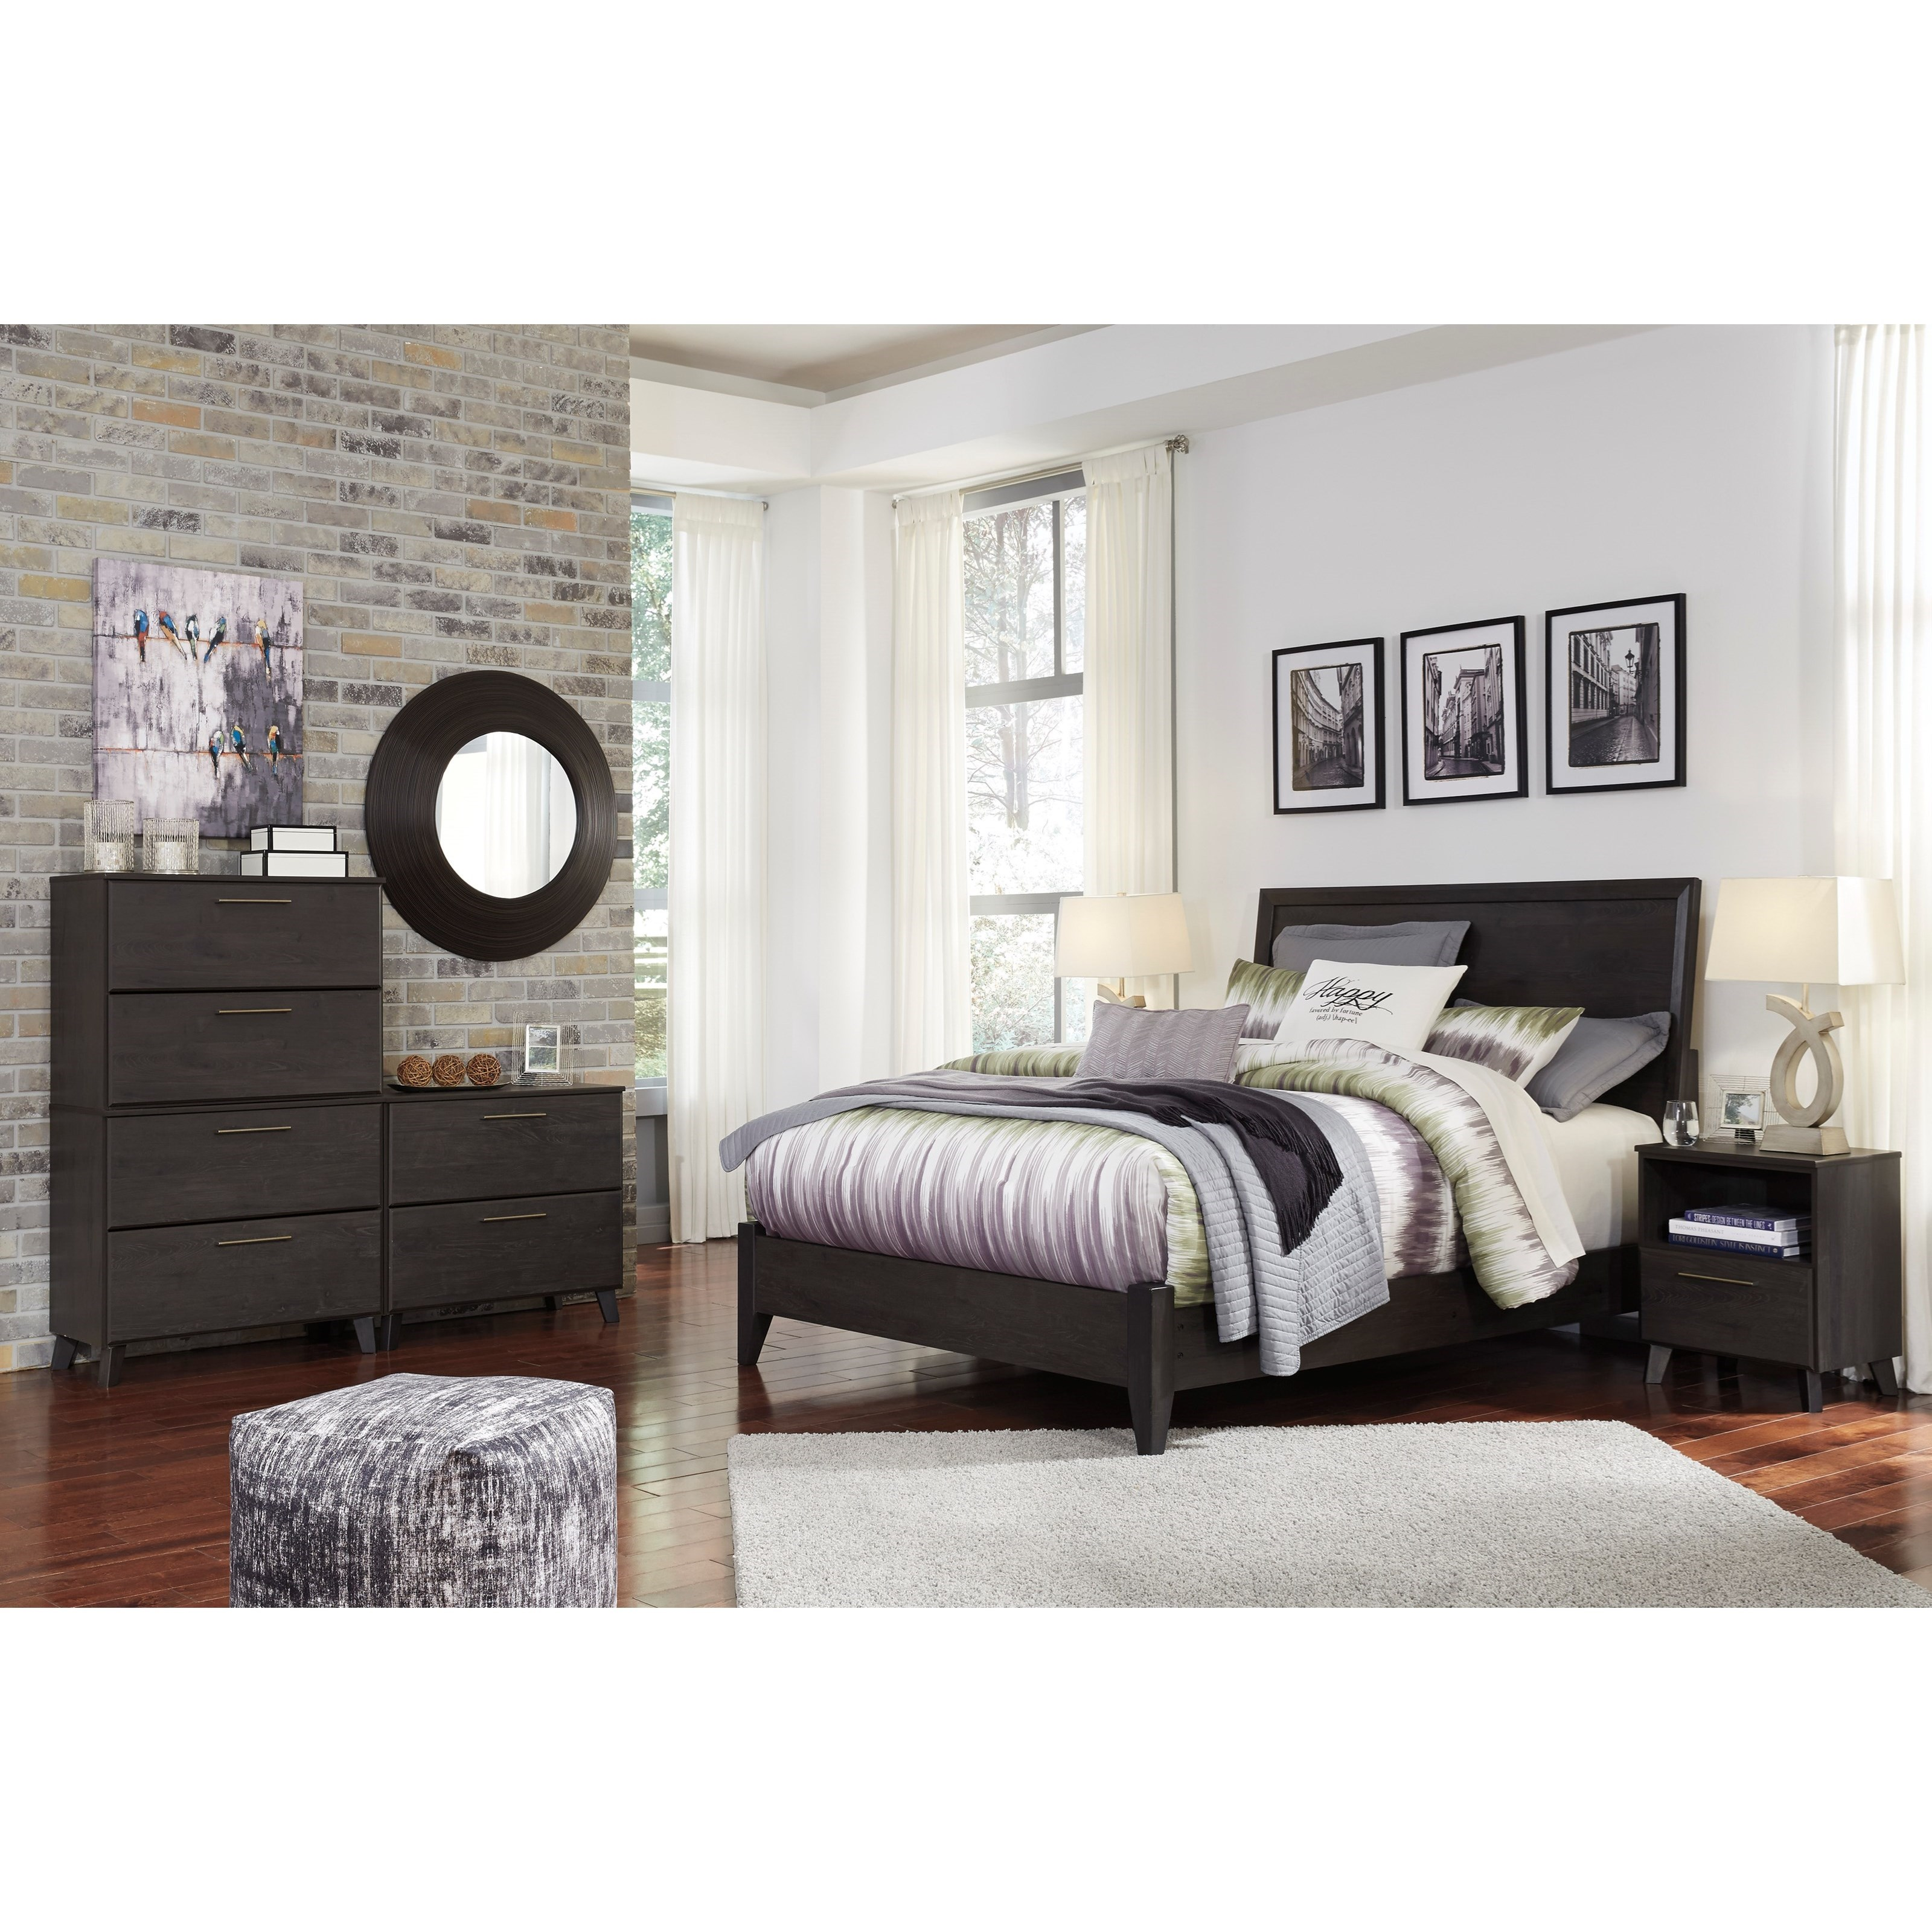 Signature Design by Ashley Daltori Queen Bedroom Group - Item Number: B273 Q  Bedroom Group